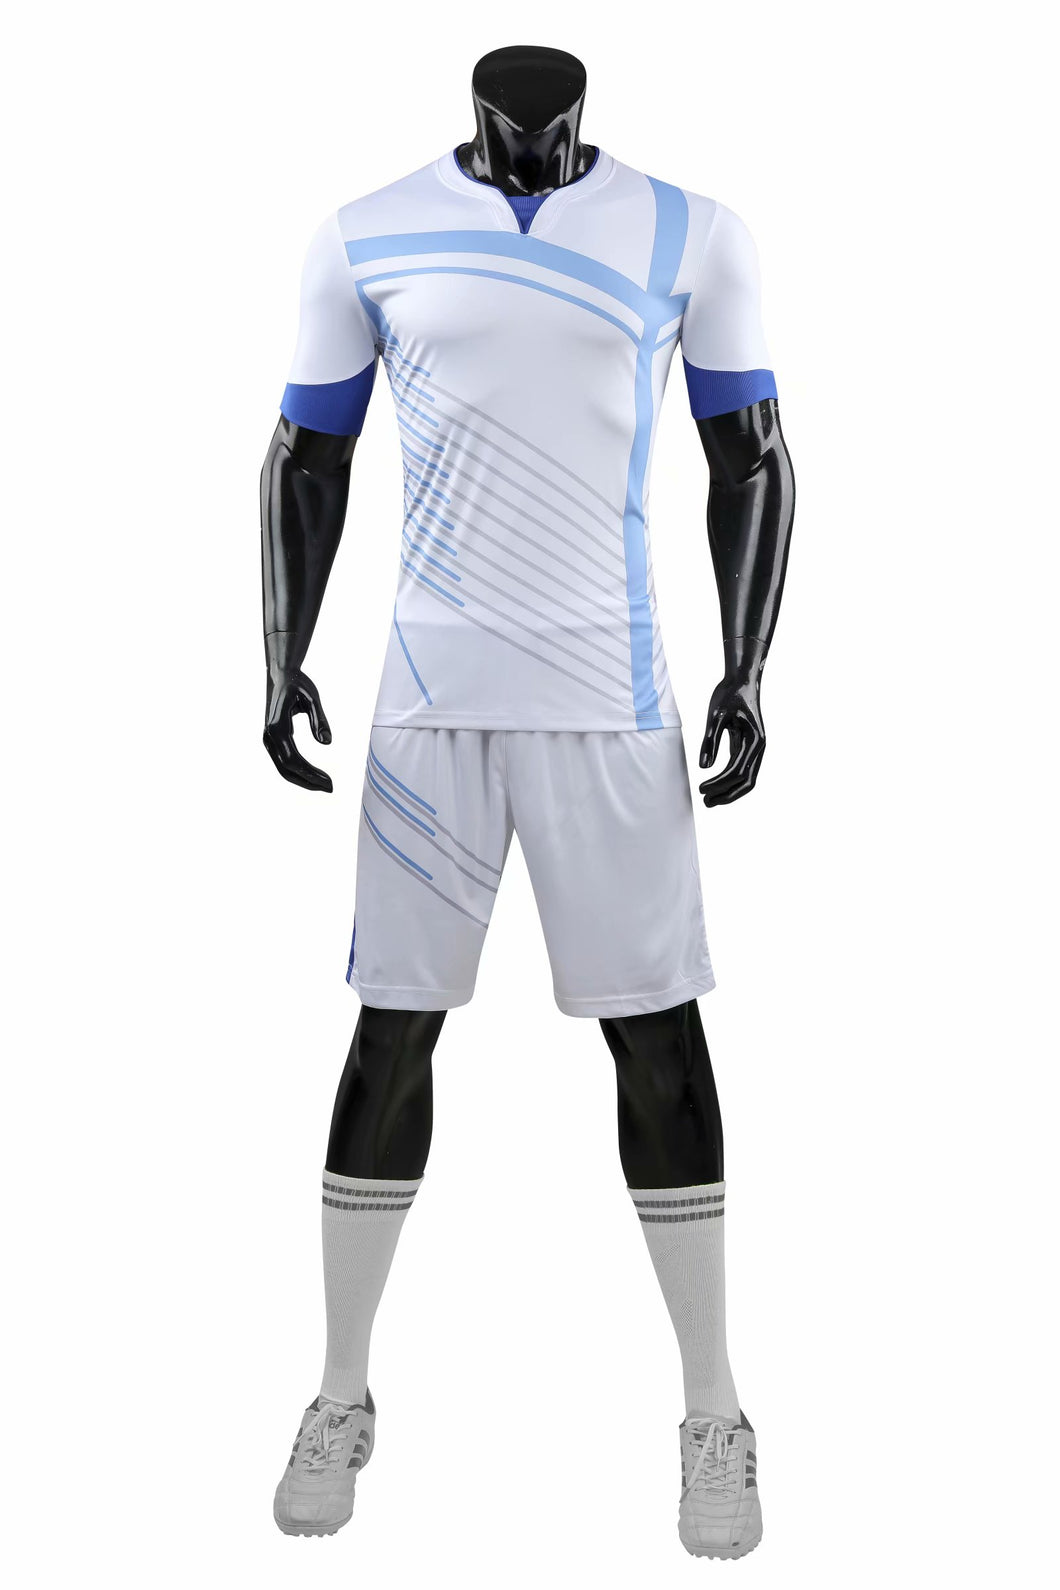 Full Football Kit - White with Blue Side Stripe.